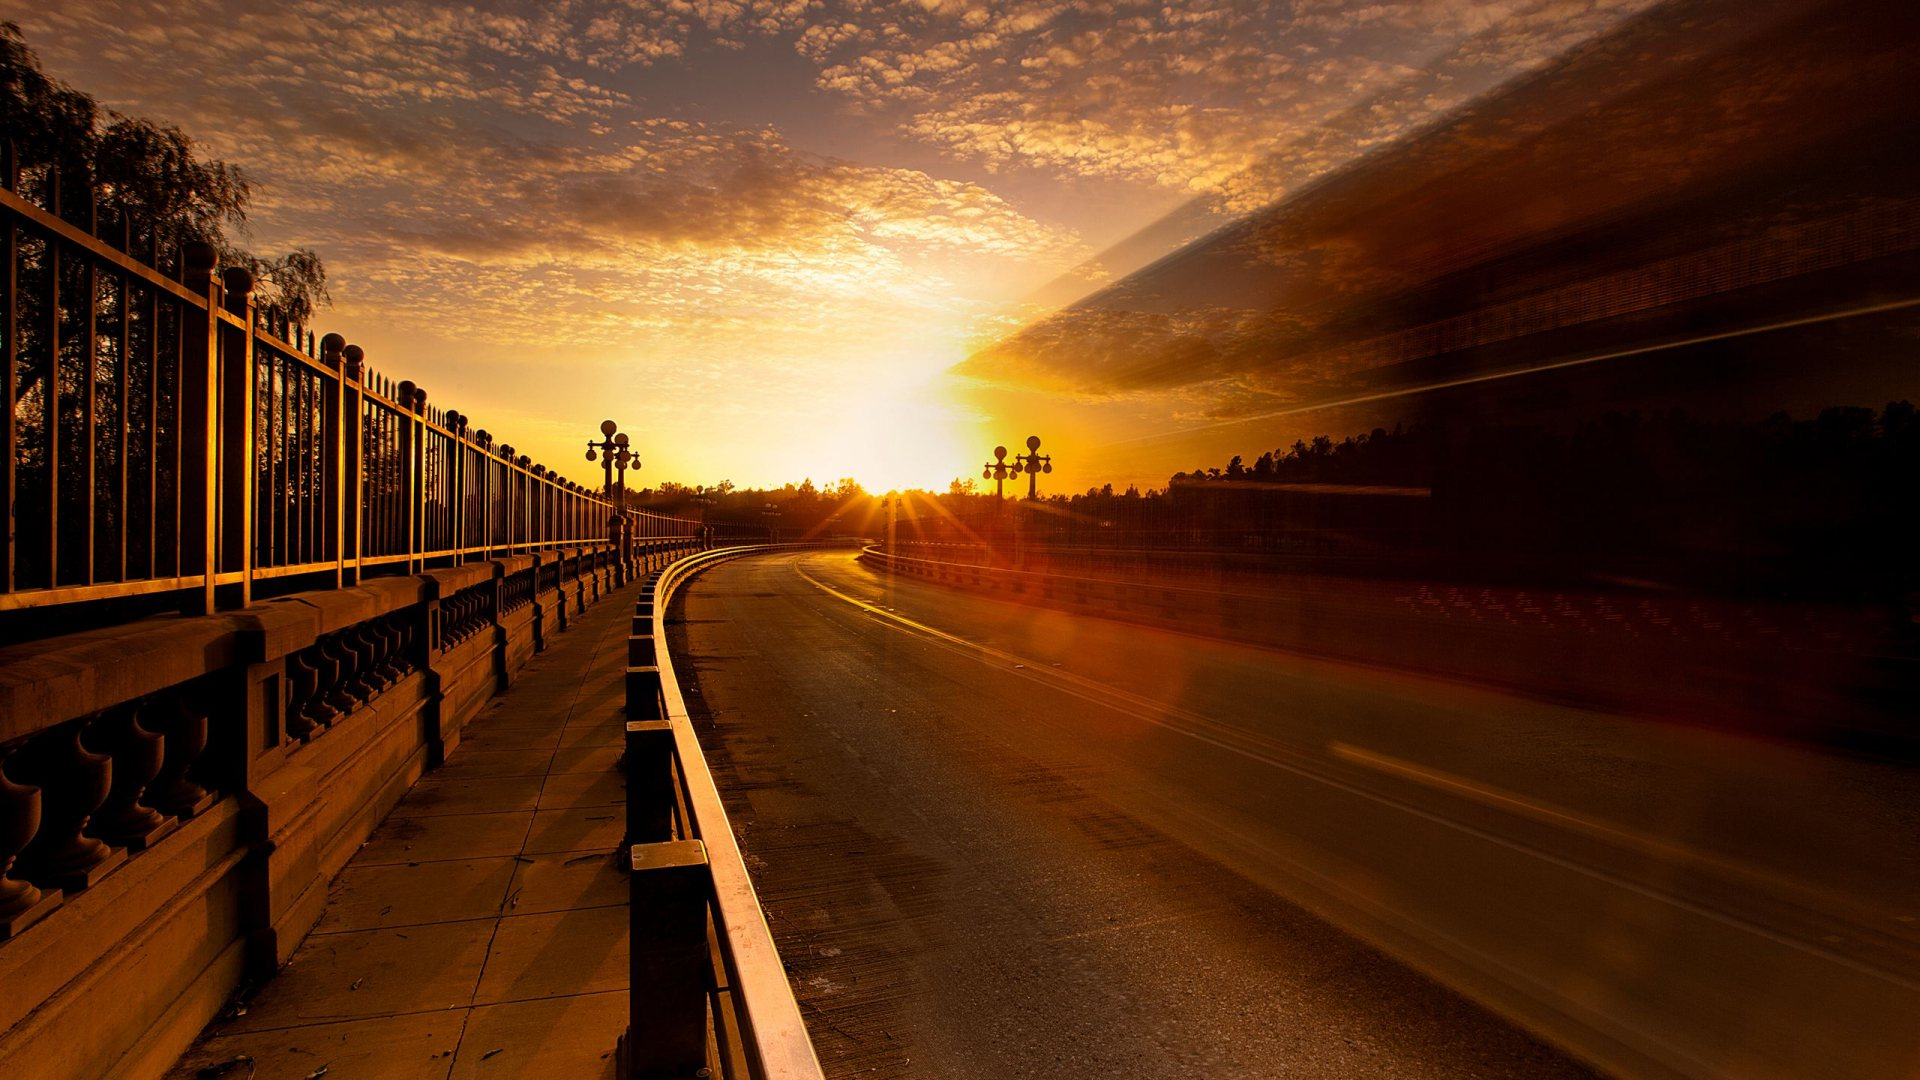 Road Sunset Wallpaper Road to Sunset - High ...